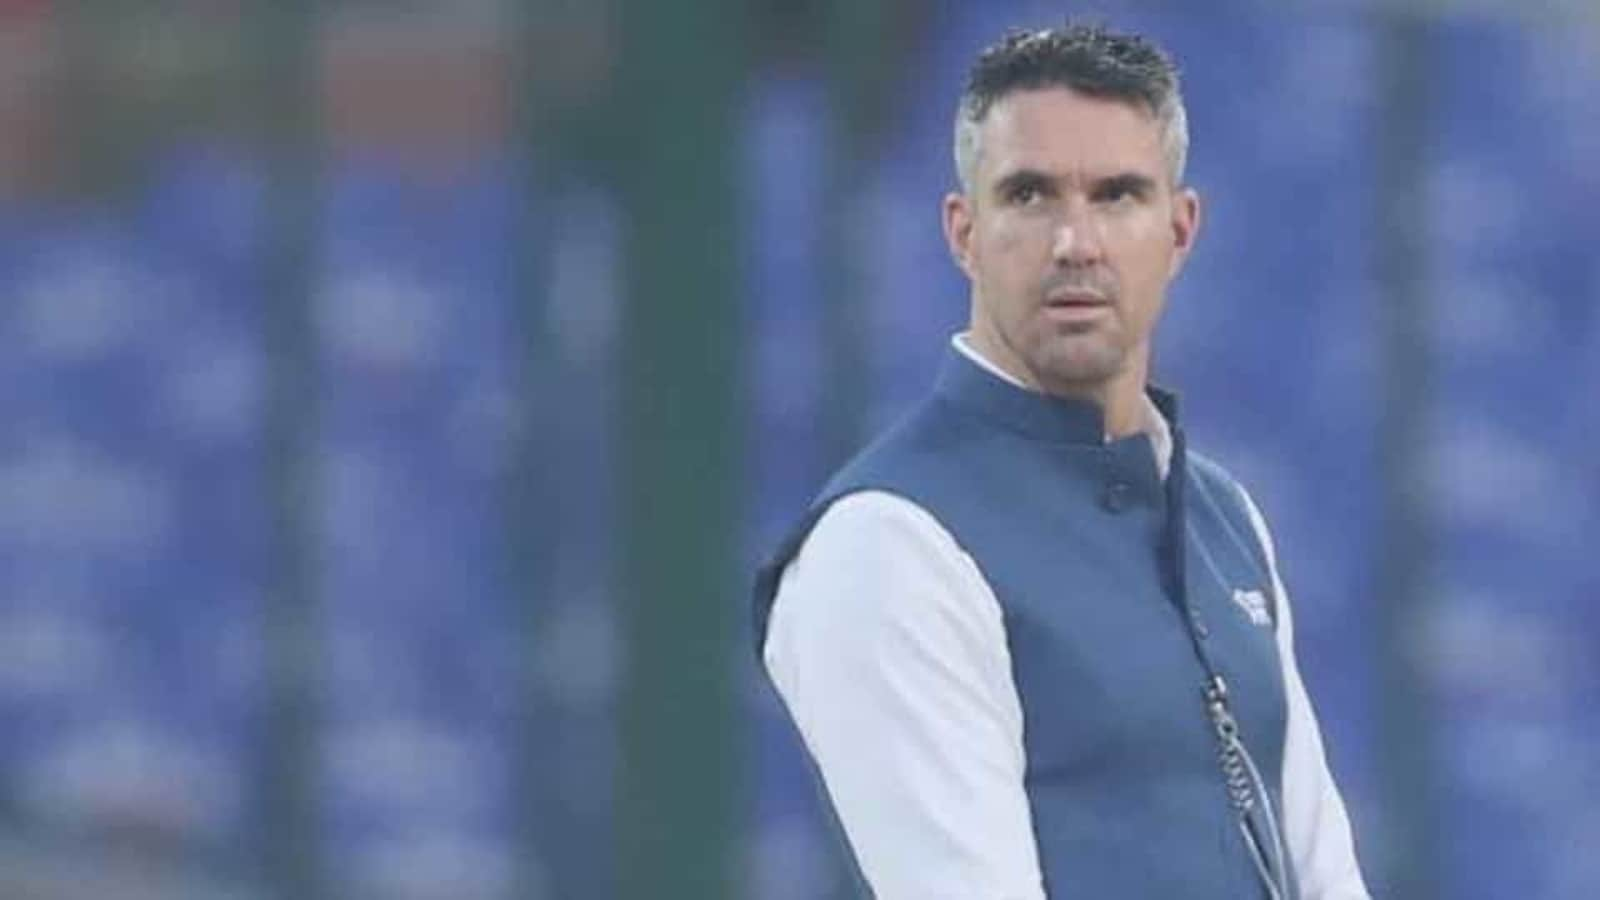 'Leave the players out': Kevin Pietersen defends England cricketers on IPL debate, wants ECB to be questioned - Hindustan Times